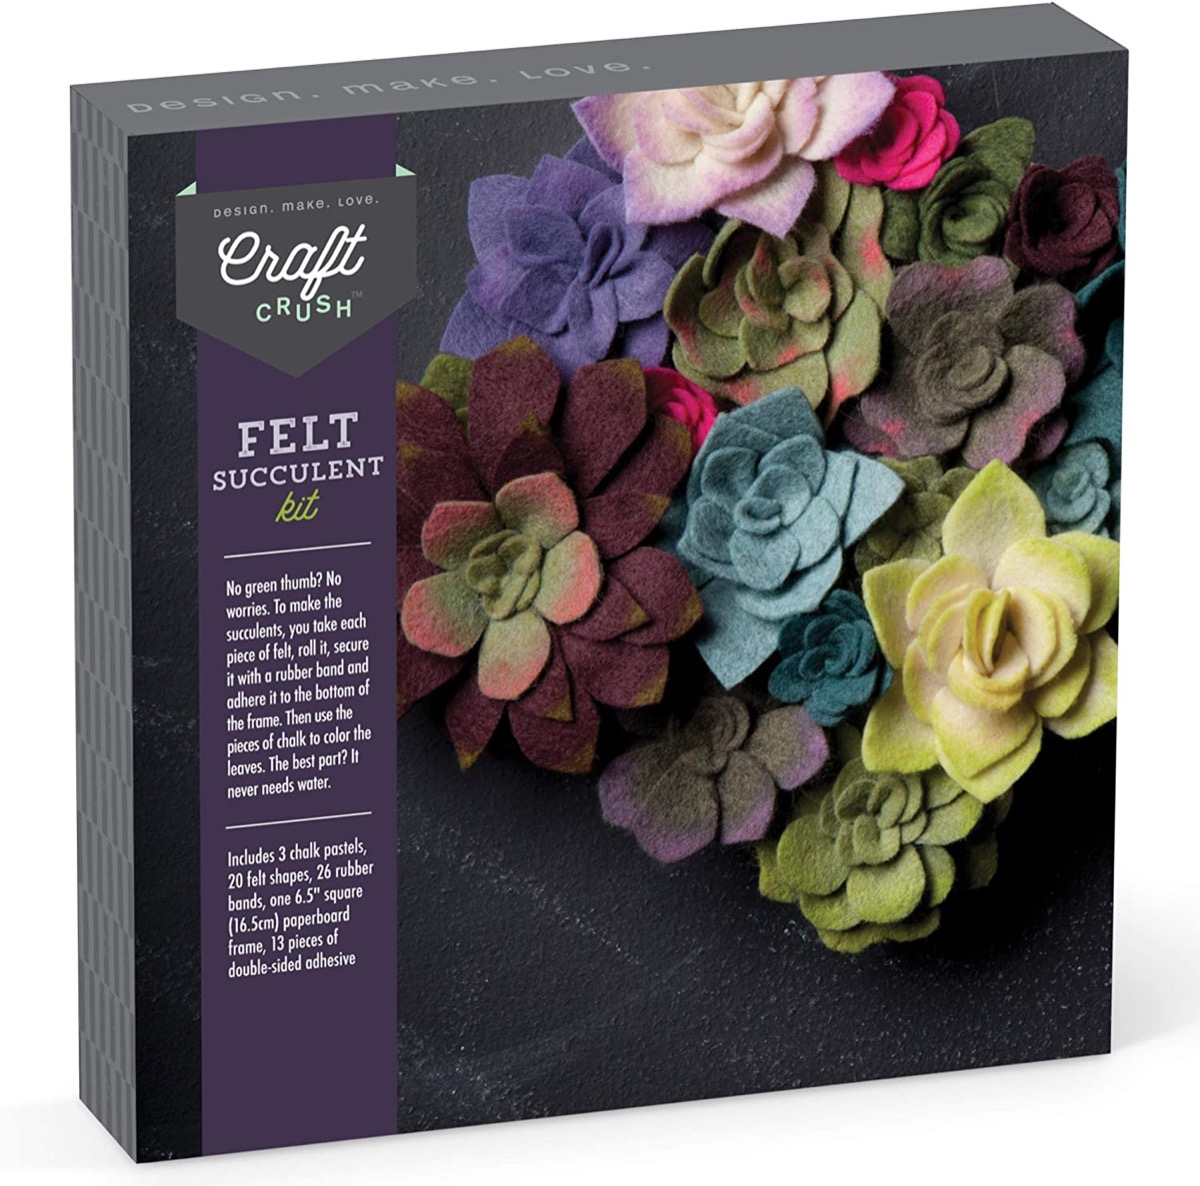 black box with pictures of colorful felt succulent plants on it